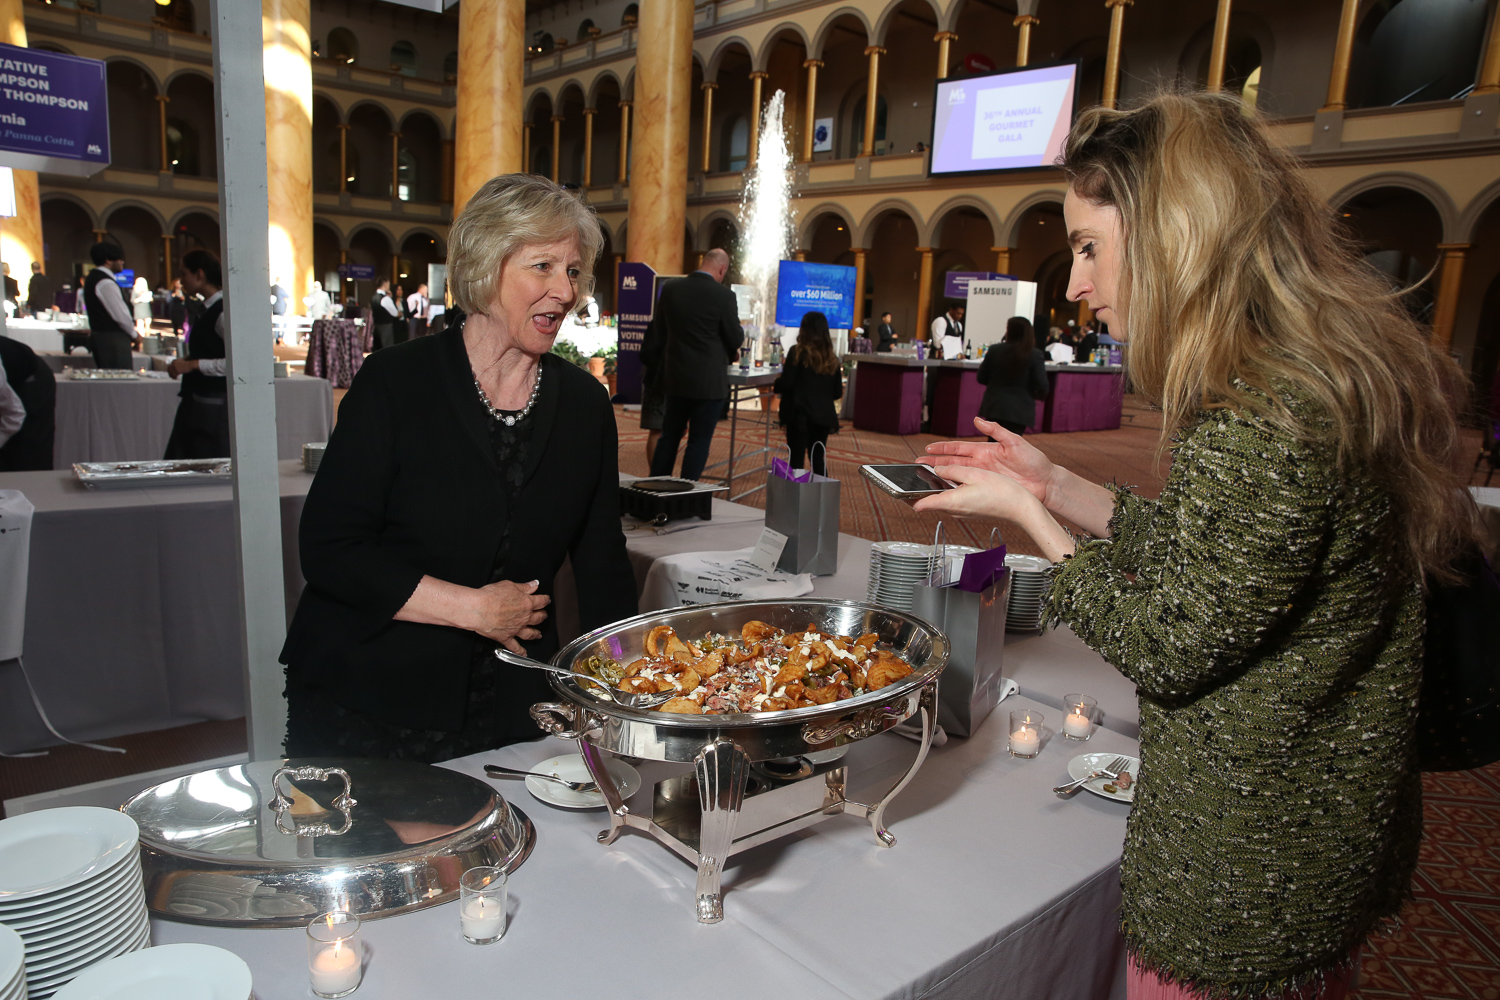 Former First Lady of Idaho Vicki Risch serves up Buffalo Blues. (Amanda Andrade-Rhoades/DC Refined)